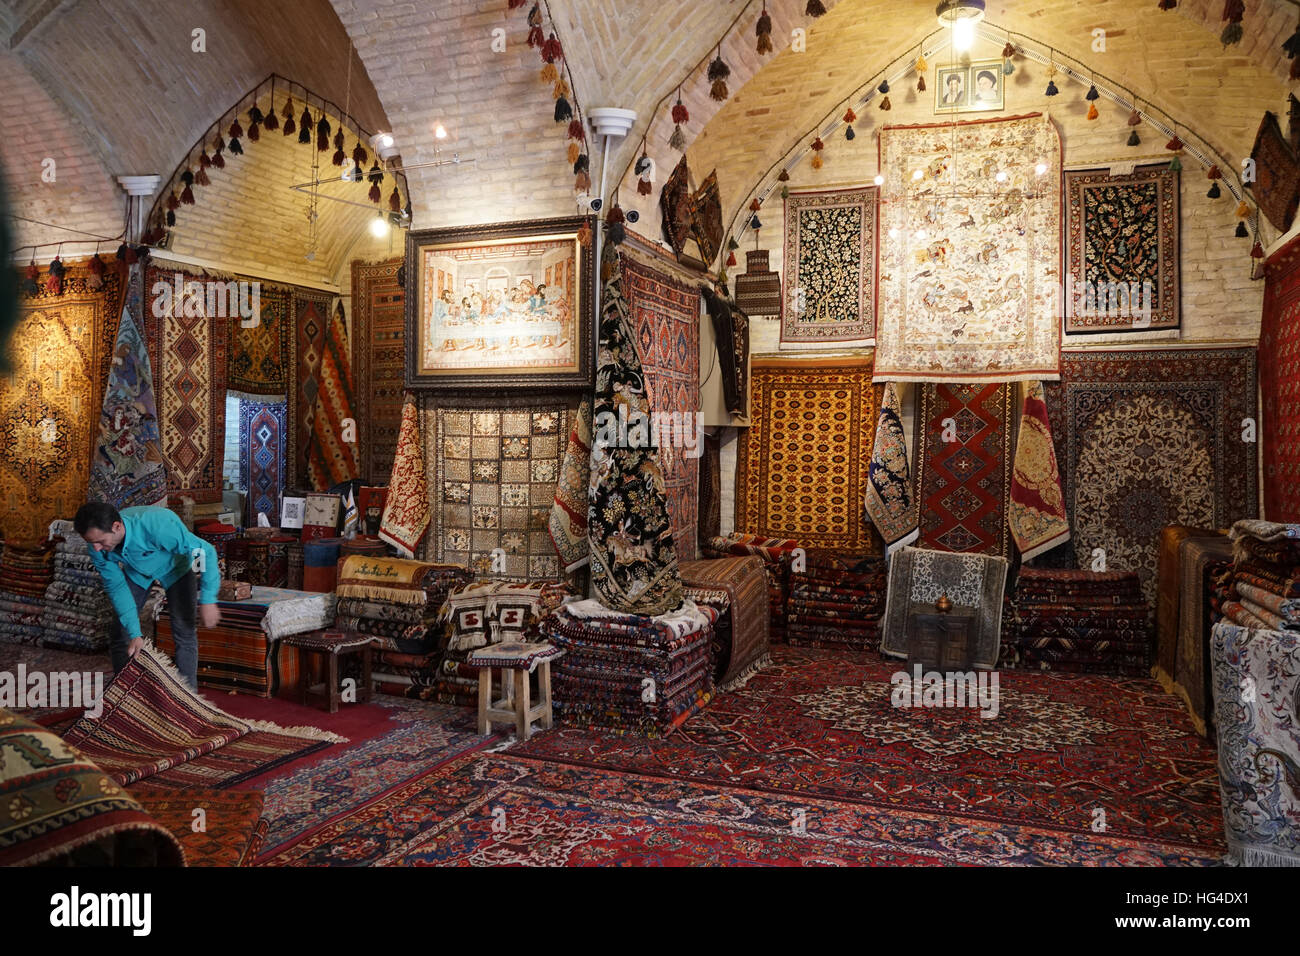 Carpet shop, Grand Bazaar, Isfahan, Iran, Middle East - Stock Image